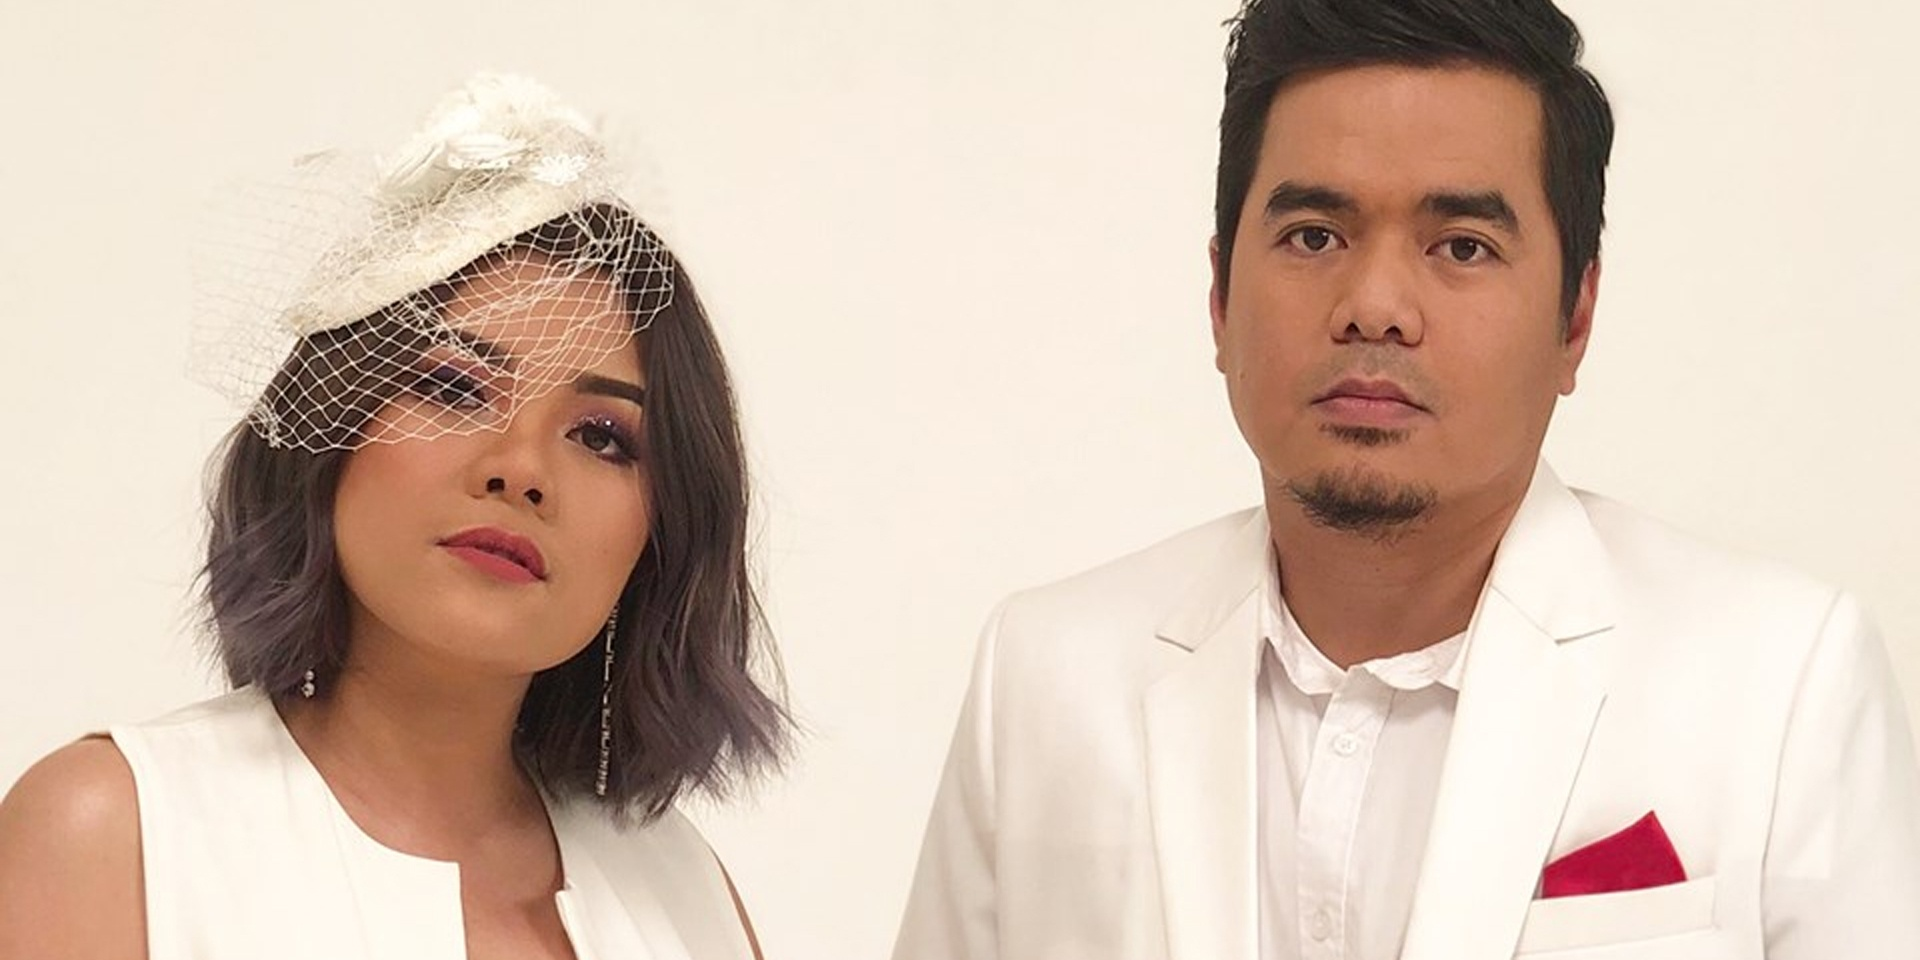 Gloc-9 releases first independent single 'Dungaw' featuring Keiko Necesario – listen